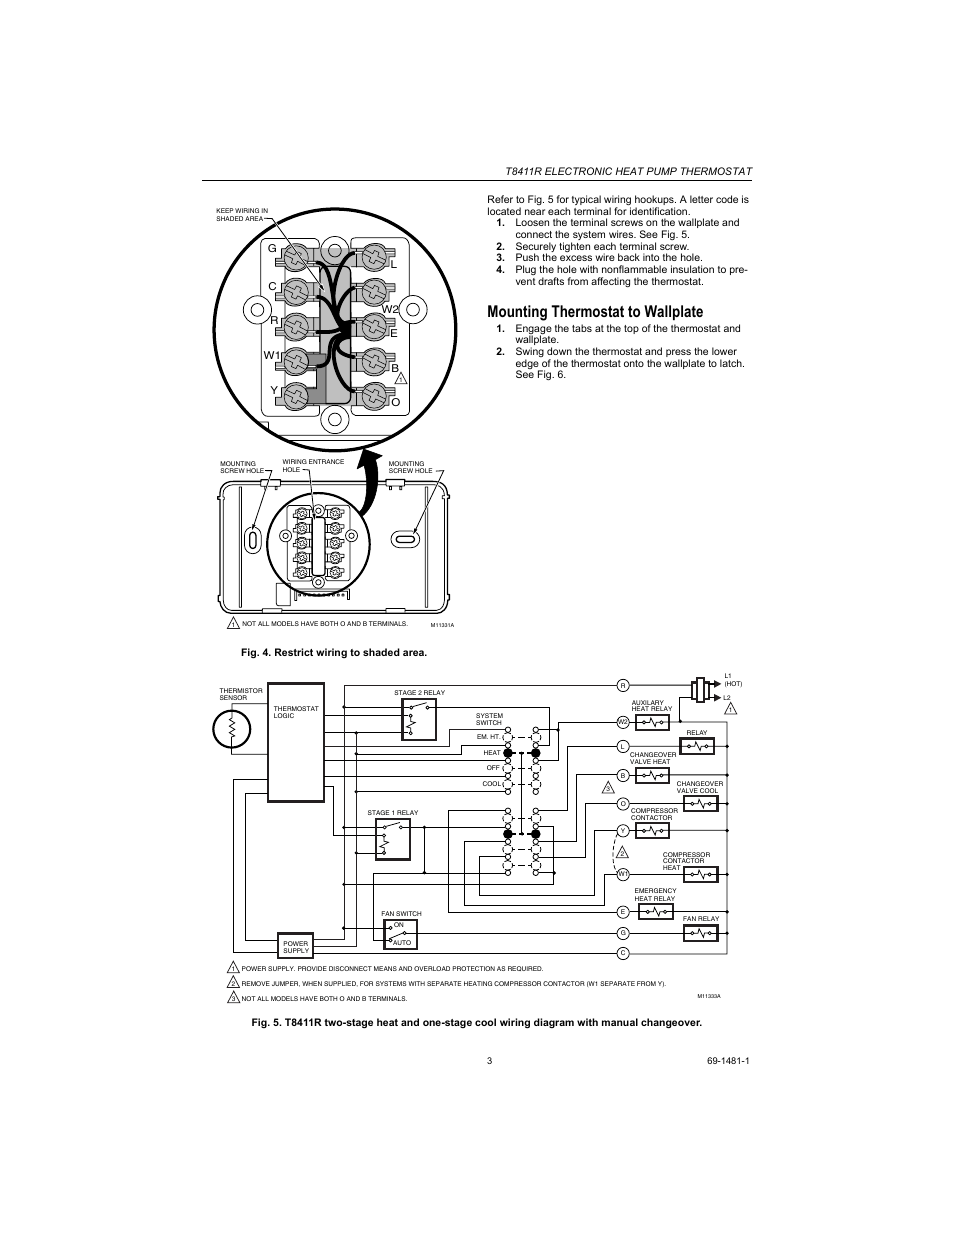 T8411r Wiring Diagram Schemes Honeywell Thermostat For Heat Pump Mounting To Wallplate Rh Manualsdir Com Old Trane Thermostats 5 Wire